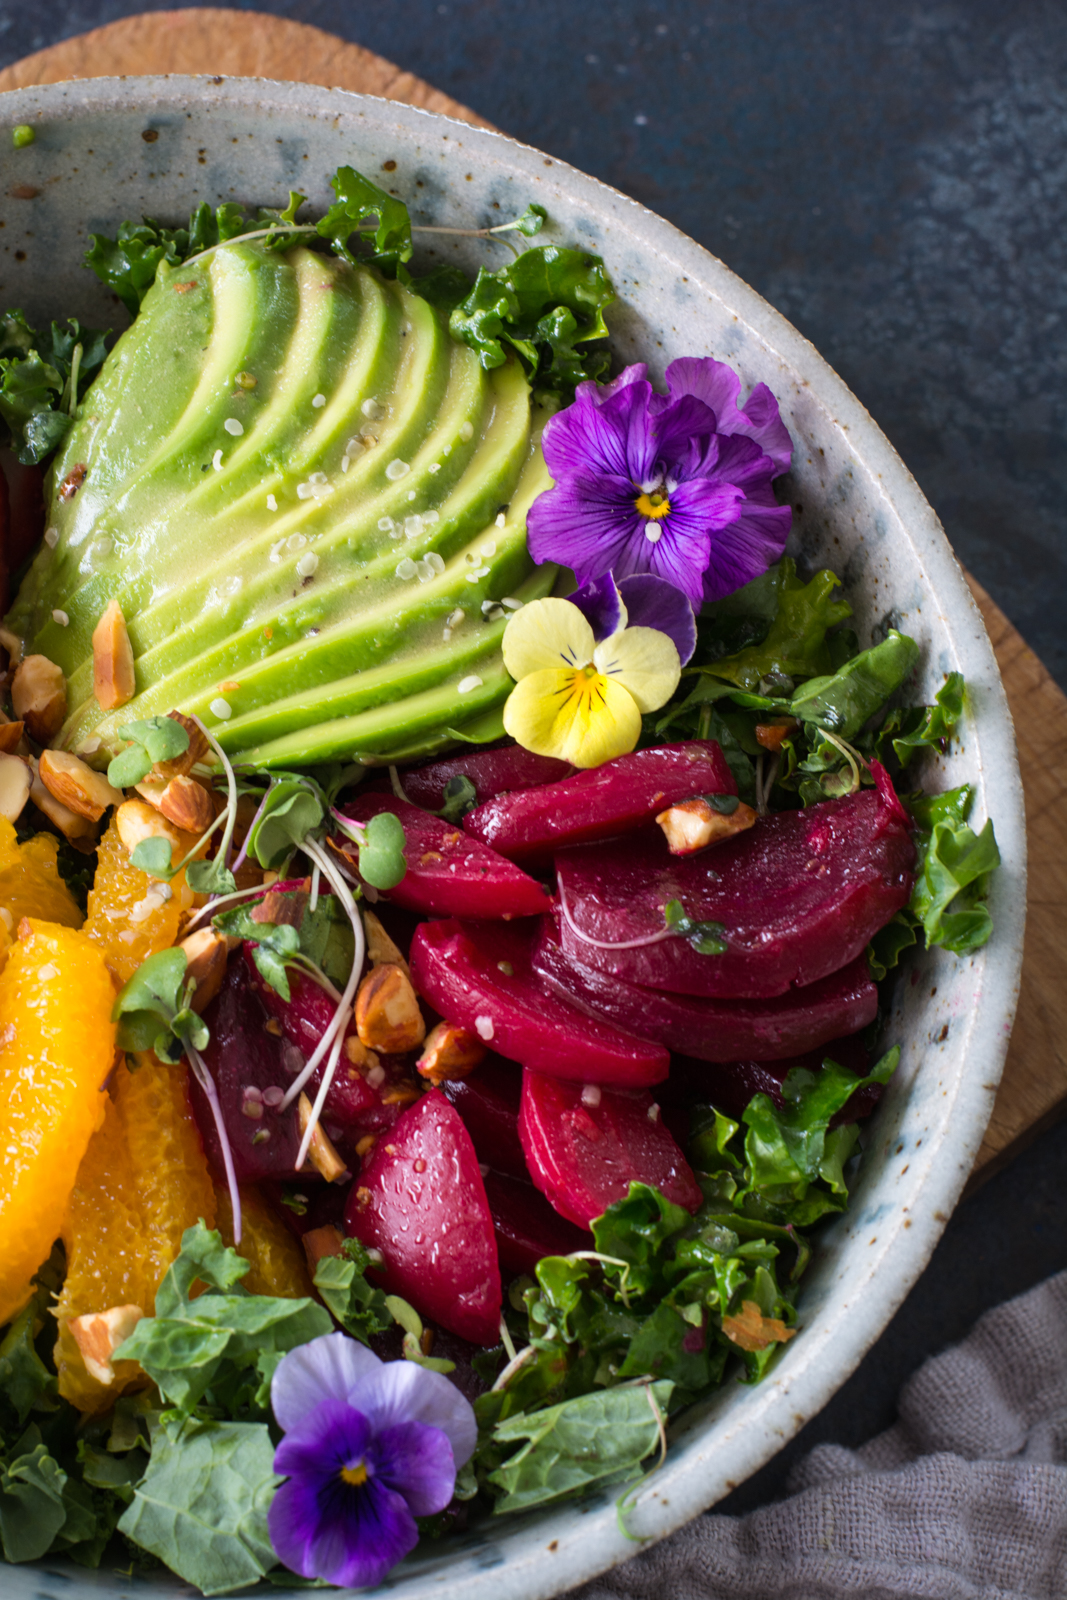 Avocado slices, beets, fruit, pansies on kale